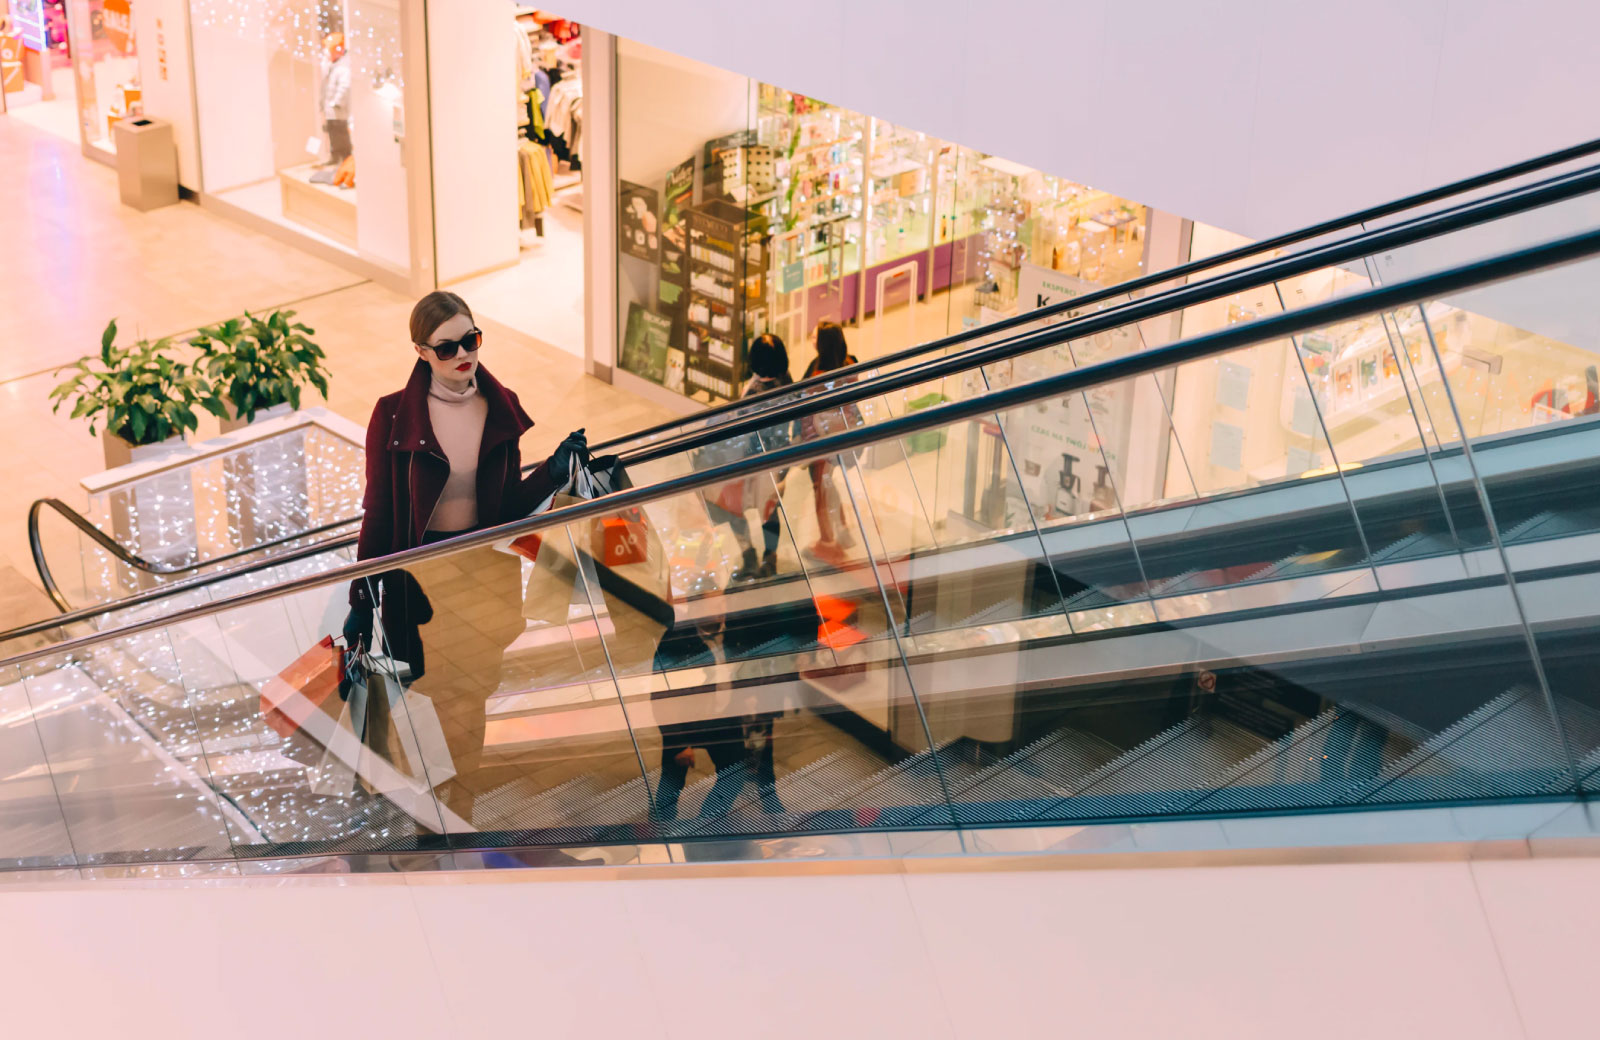 woman in jacket and shades holding shopping bags on an mall escalator